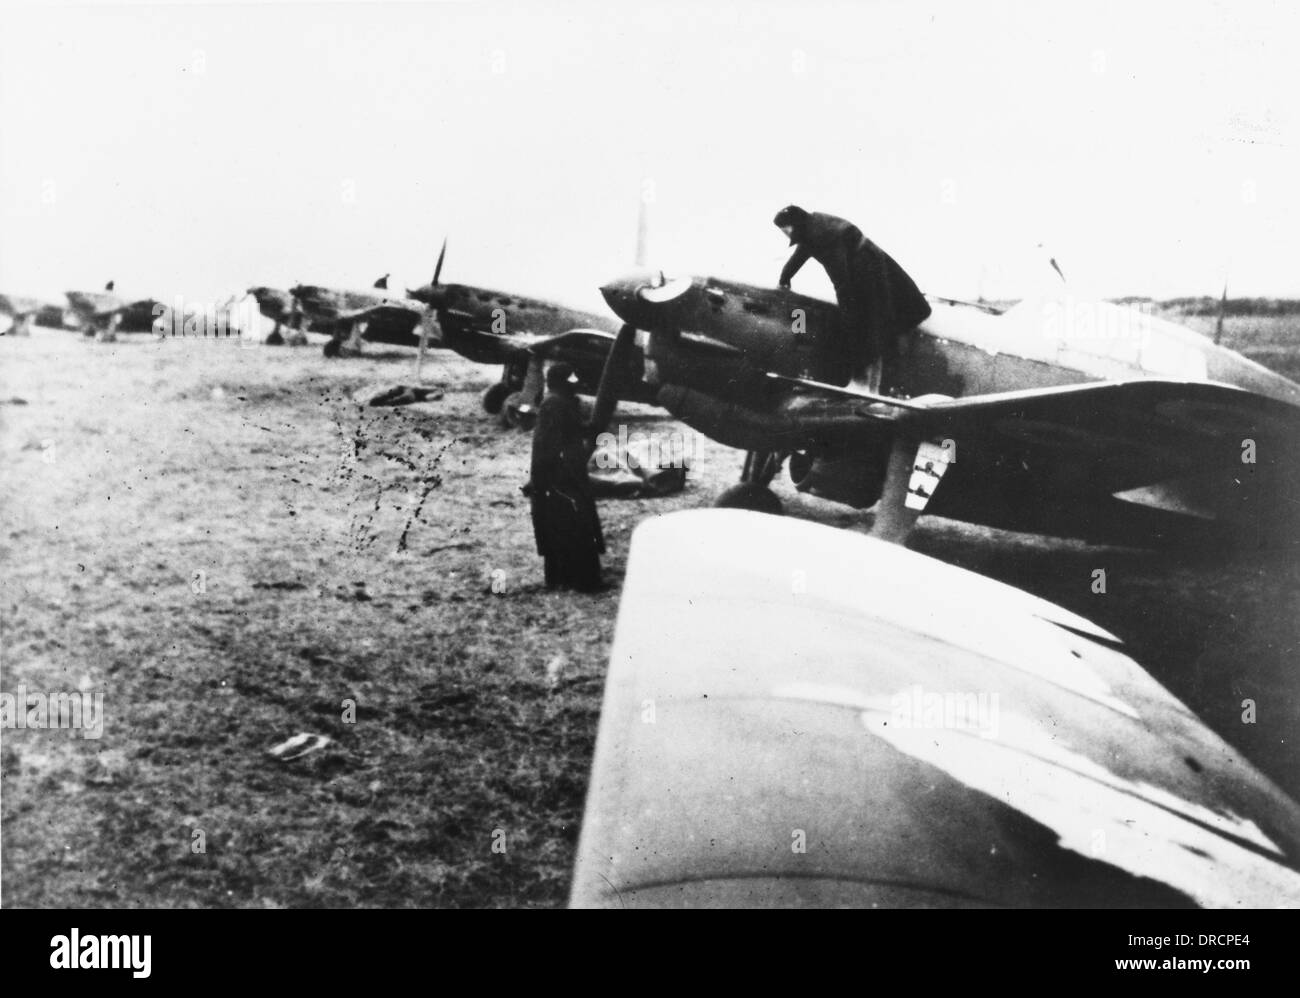 French fighter planes WWII - Stock Image